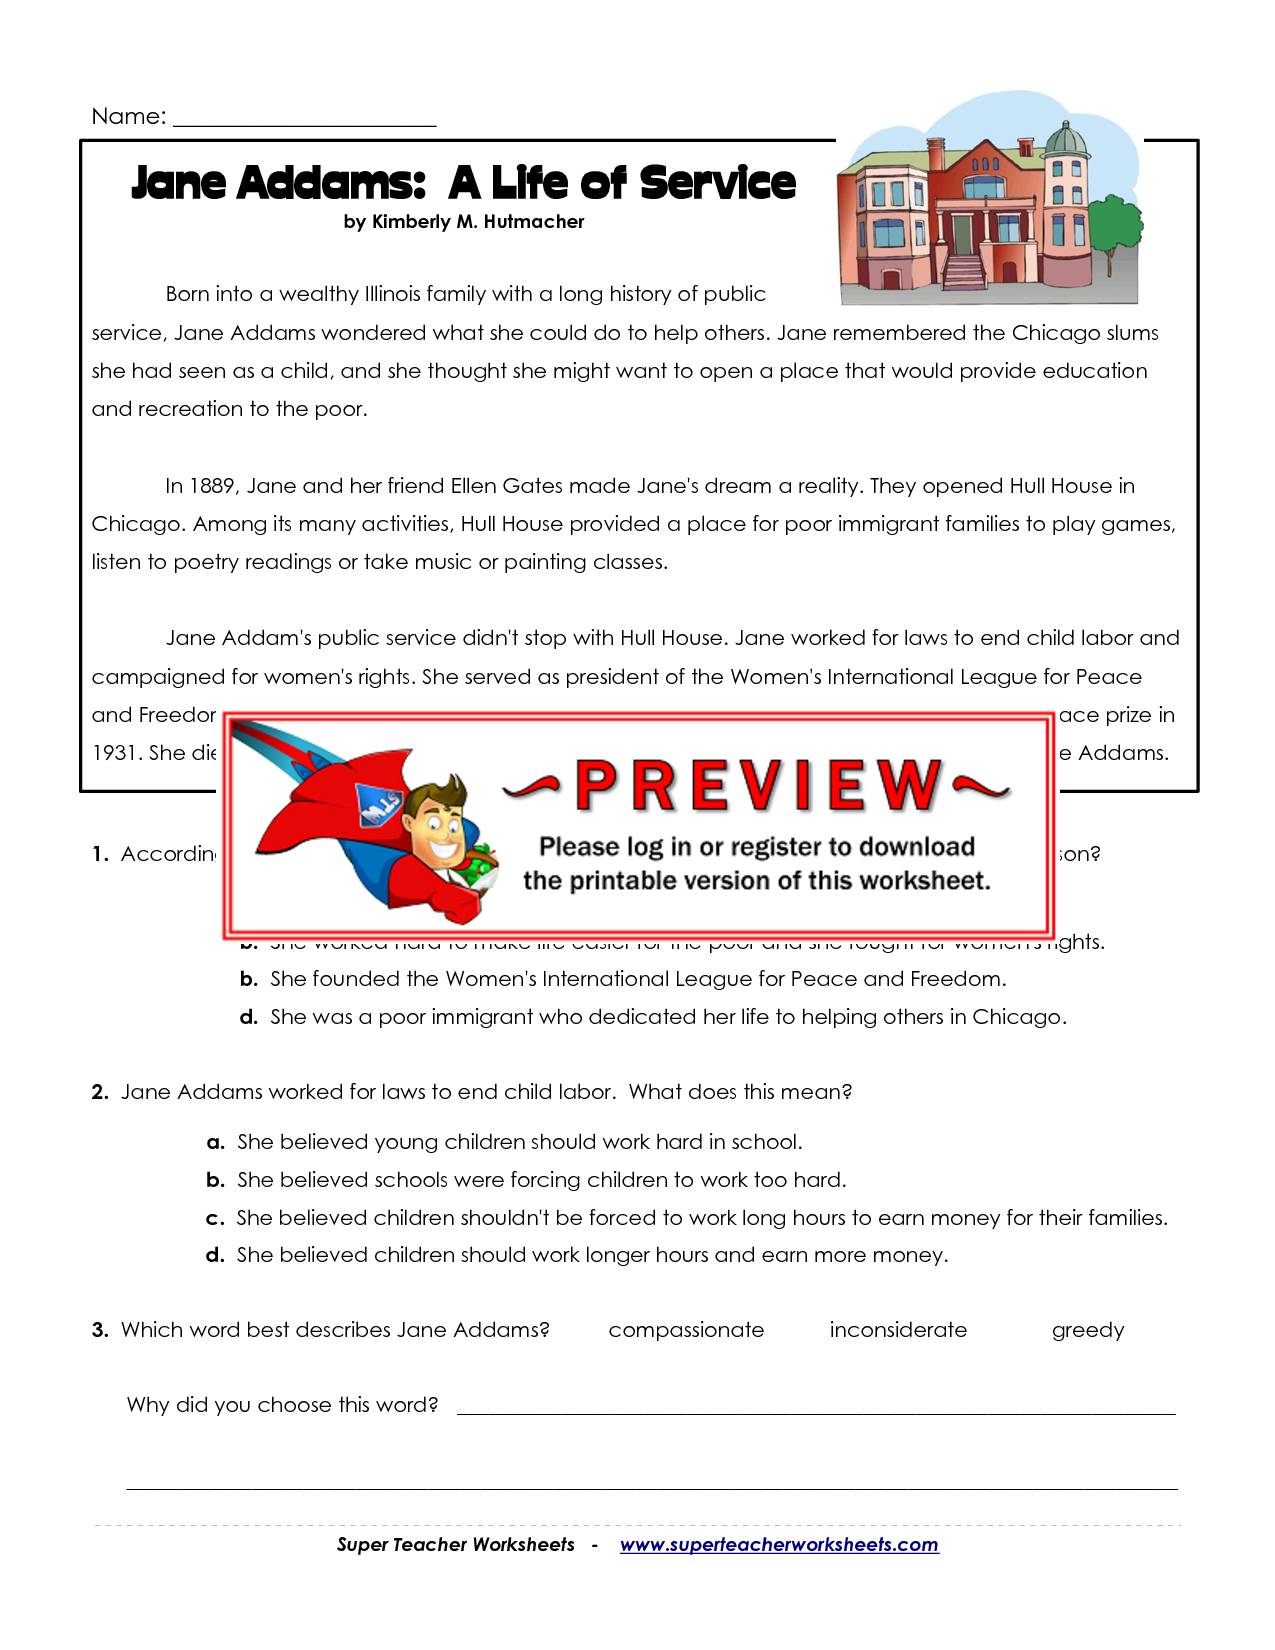 hight resolution of Jane Addams A Life of Service - Super Teacher Worksheets   Super teacher  worksheets